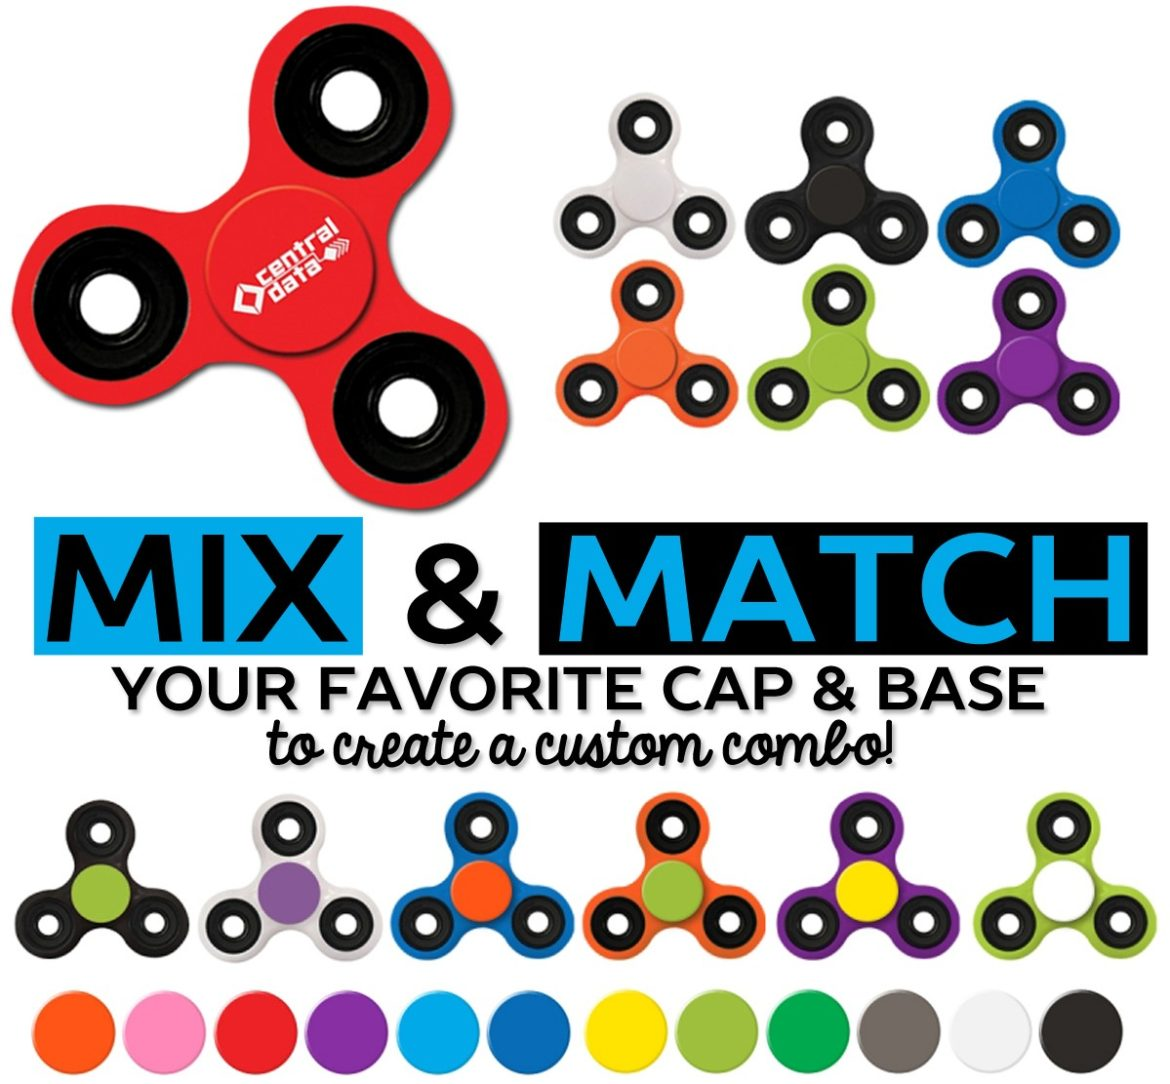 Mix And Match Mix Match Colors To Create Your Own Fidget Spinner Captiv8